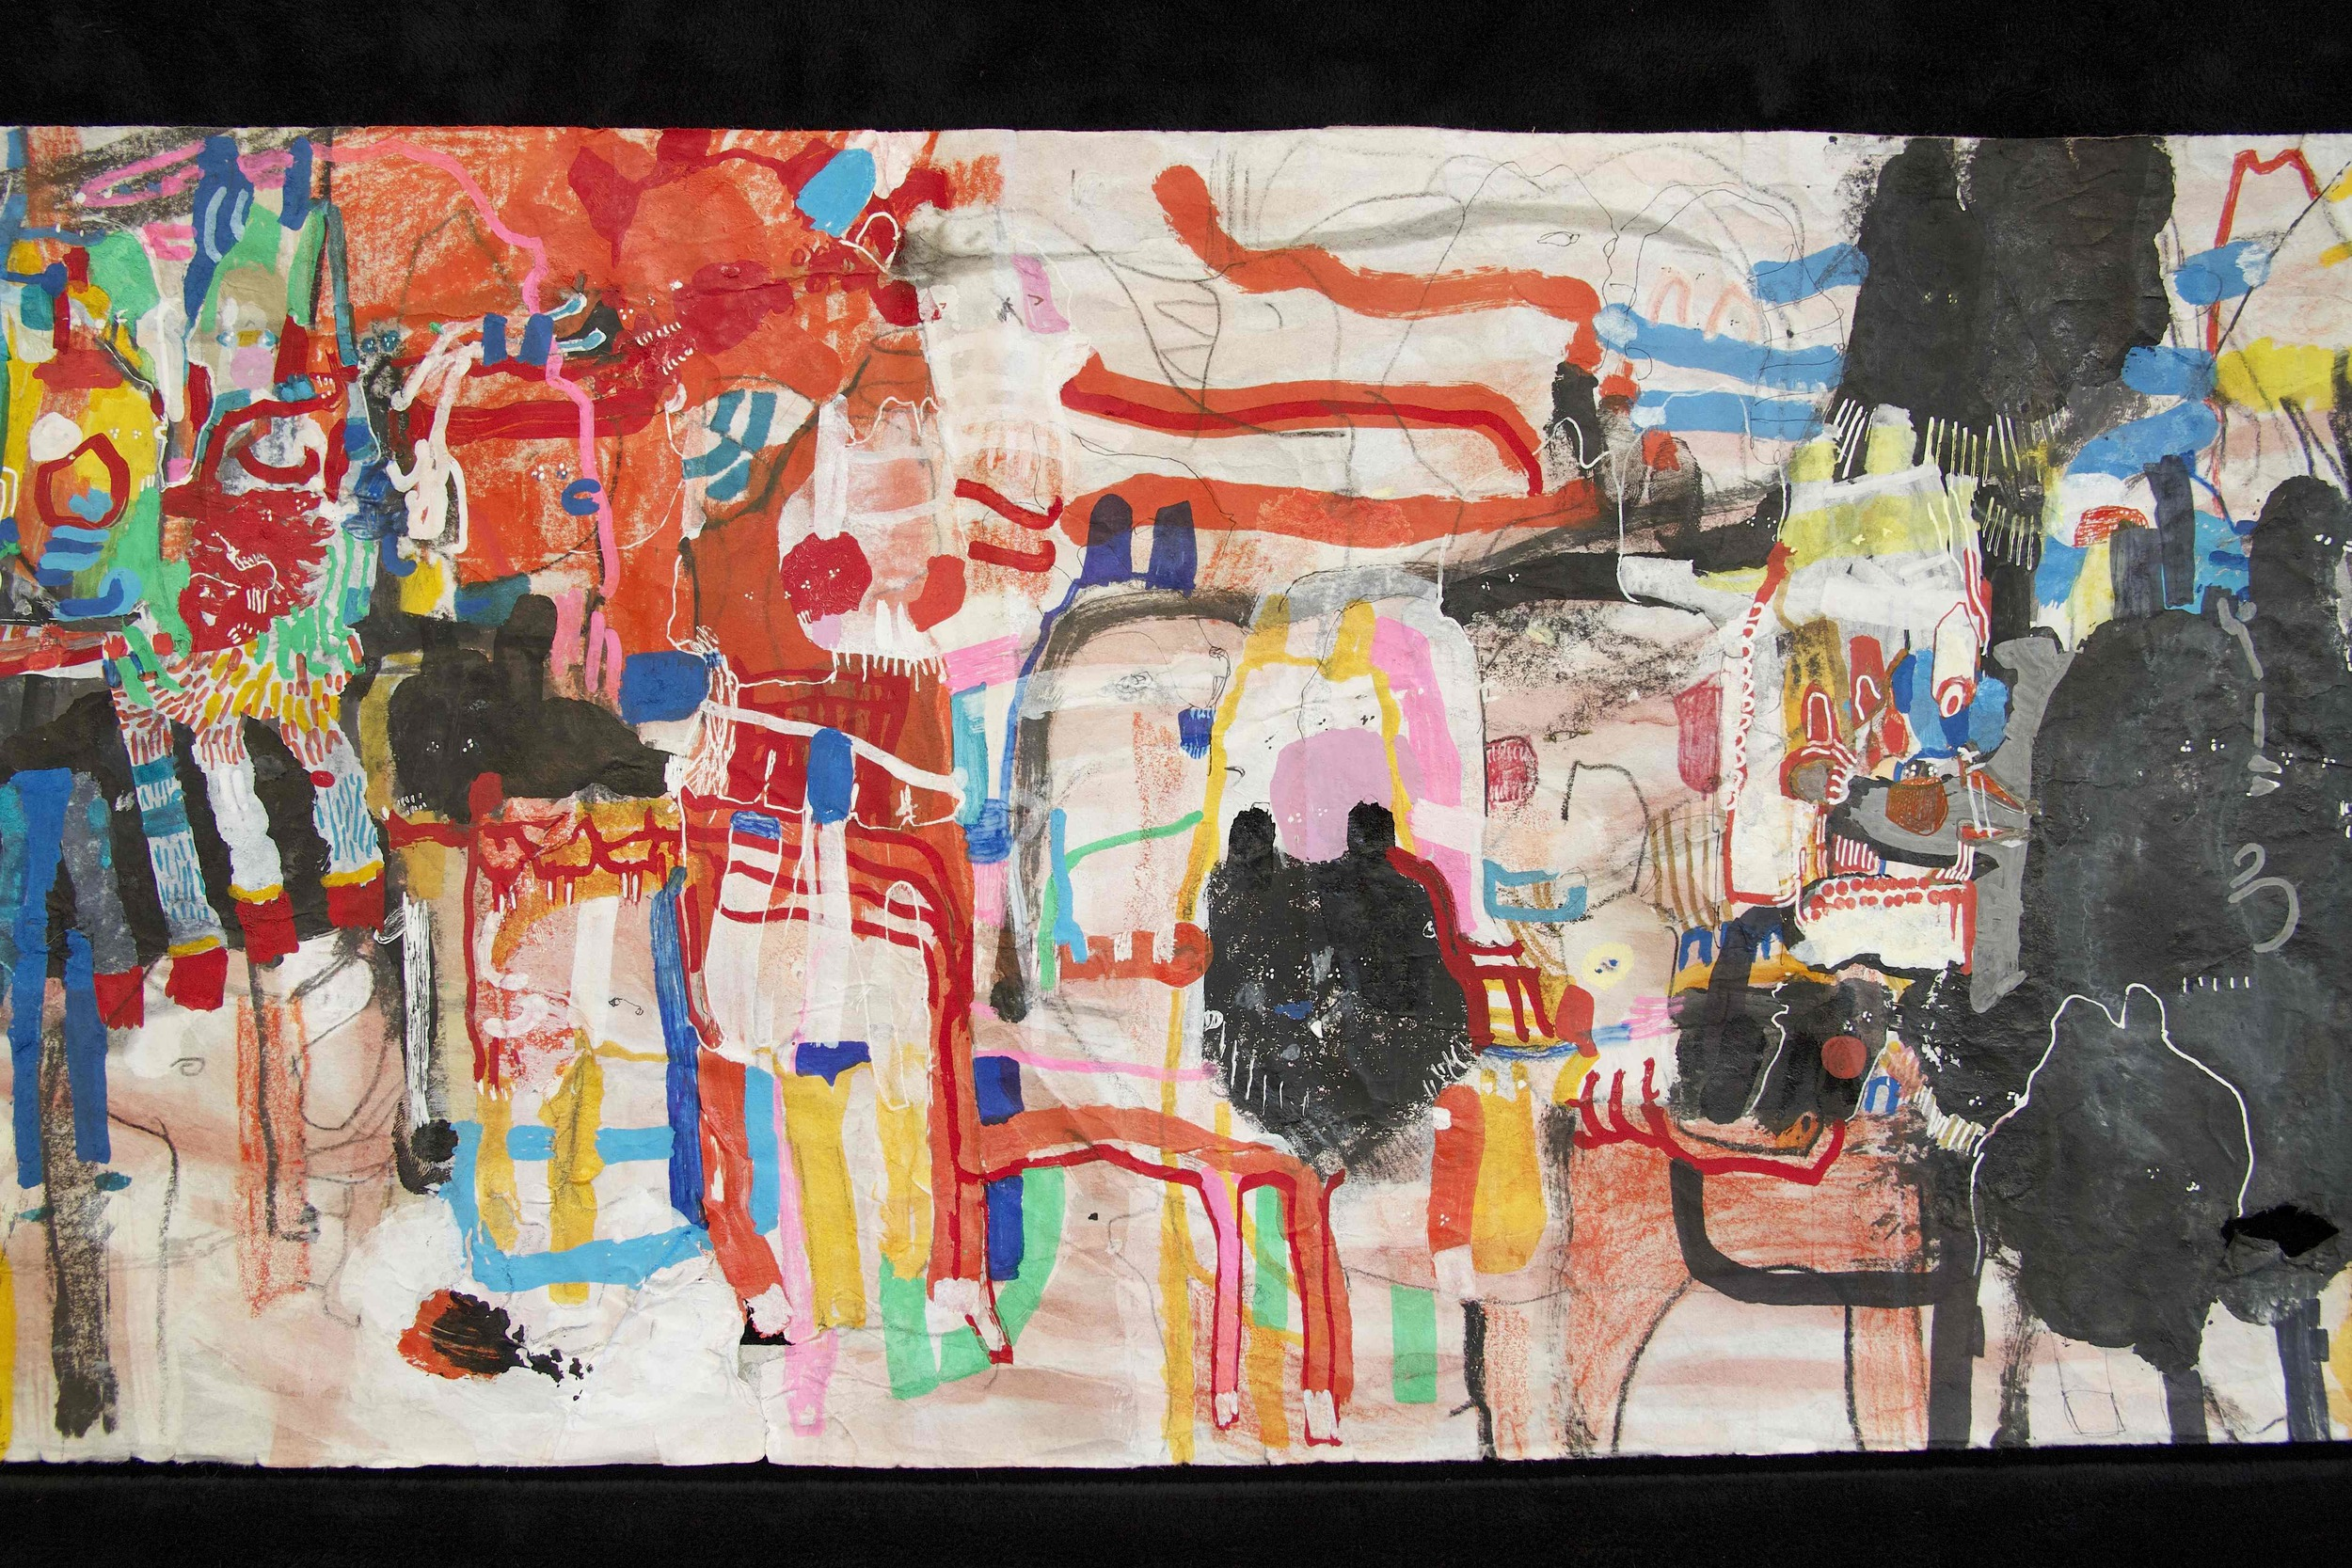 """[Detail no 27]  """"The Wind atop The Wood -Winds of Mount Meru Tangling Threads of Rainbow atop the Wood -Scroll 8""""   11 inches x 60 feet  ink, watercolor, gouache, dye, lost & found paper, crayon and graphite on mulberry paper scroll  2015"""